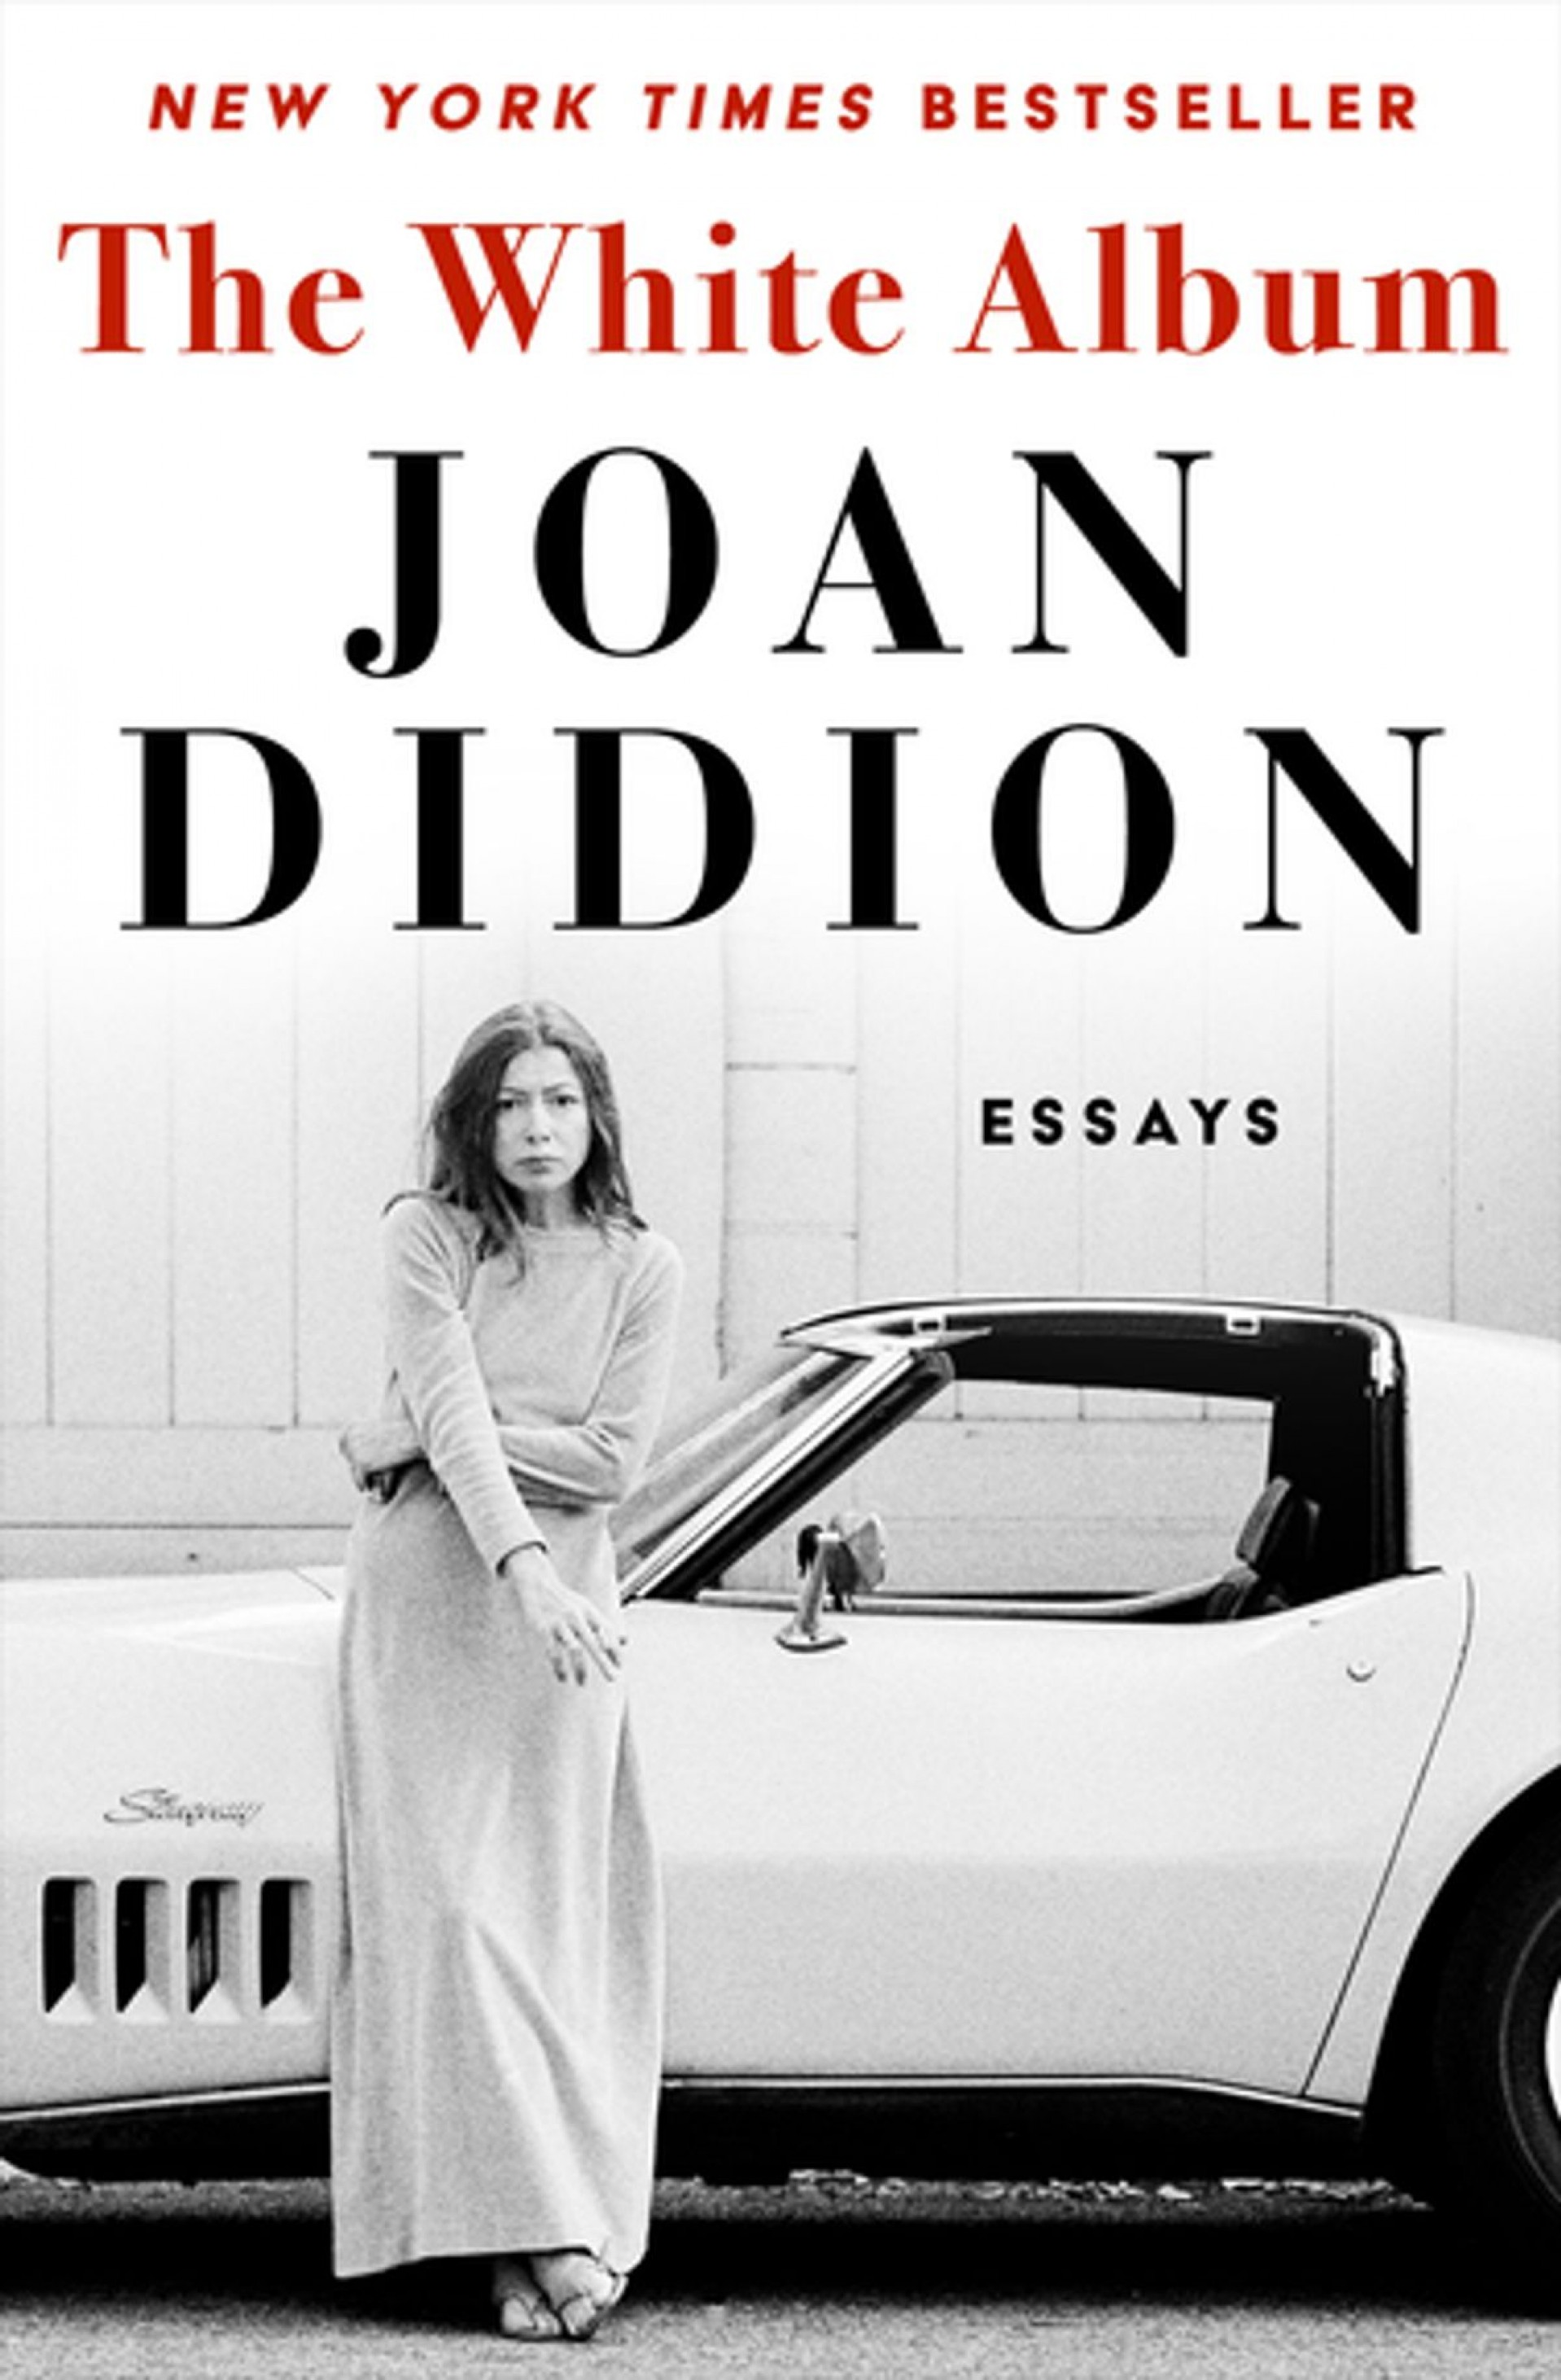 026 The White Album Essay Example Joan Didion Singular Essays On Santa Ana Winds Collections 1920